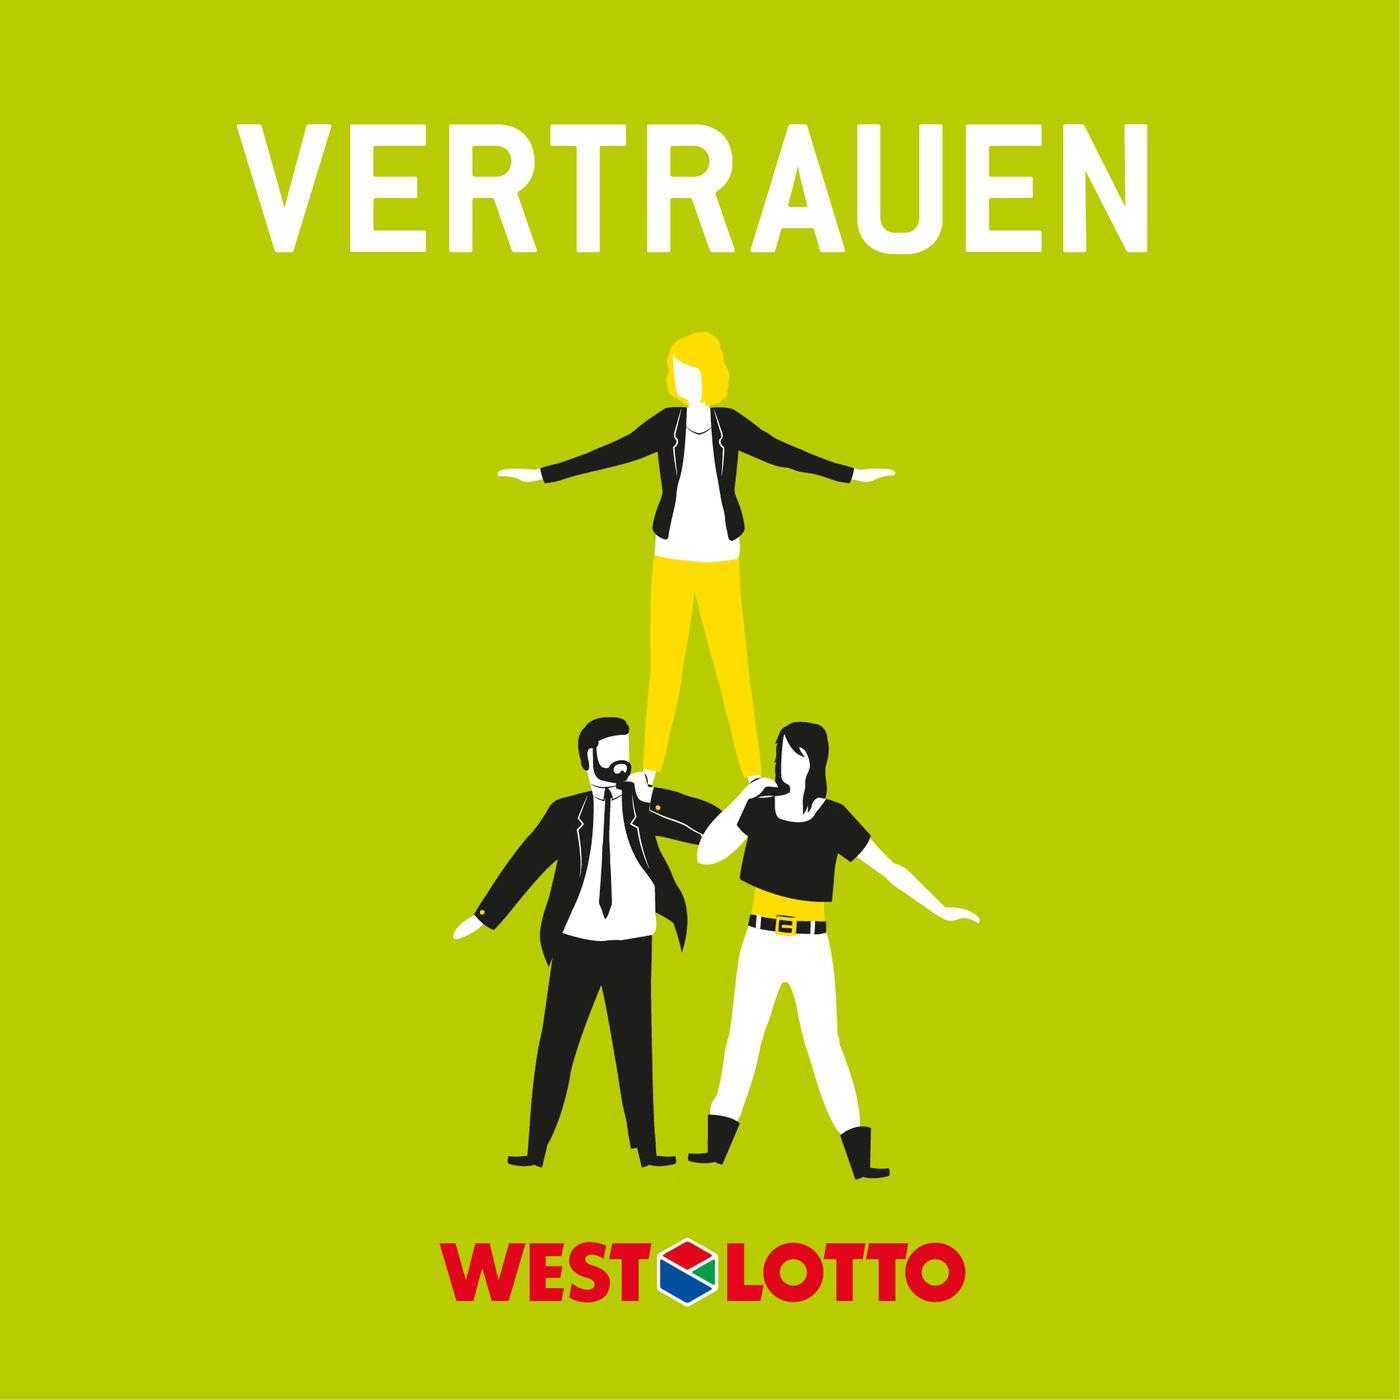 How to play westlotto